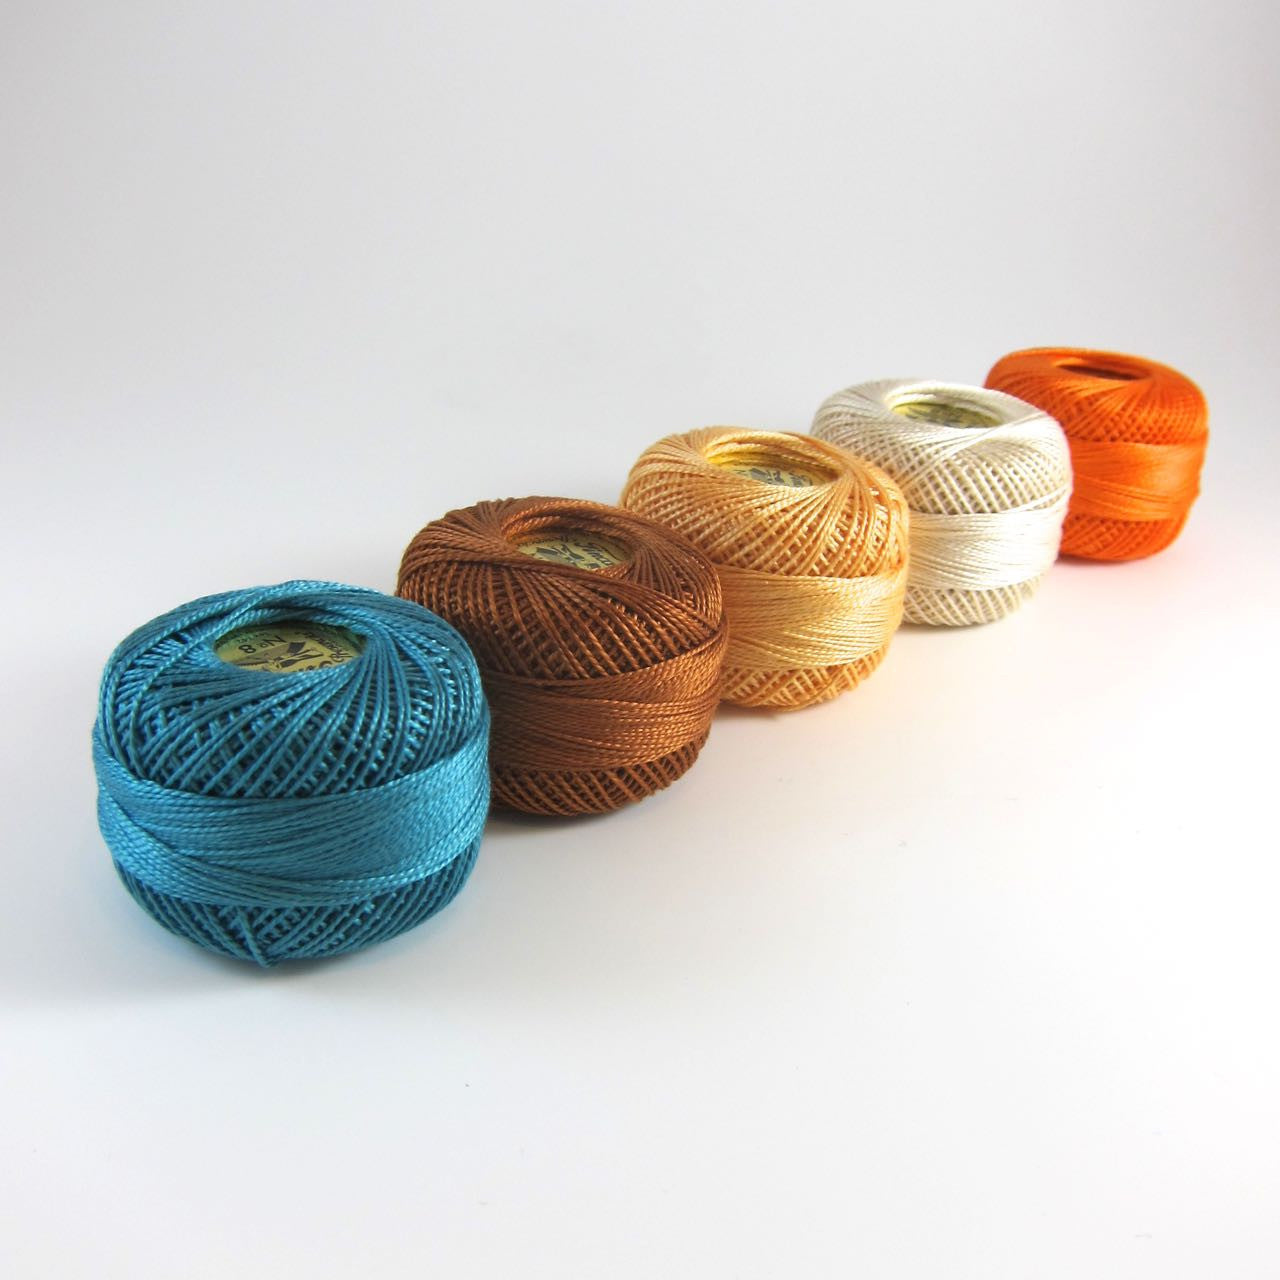 Bright Fall Pearl Cotton Thread Collection Perle Cotton - Snuggly Monkey